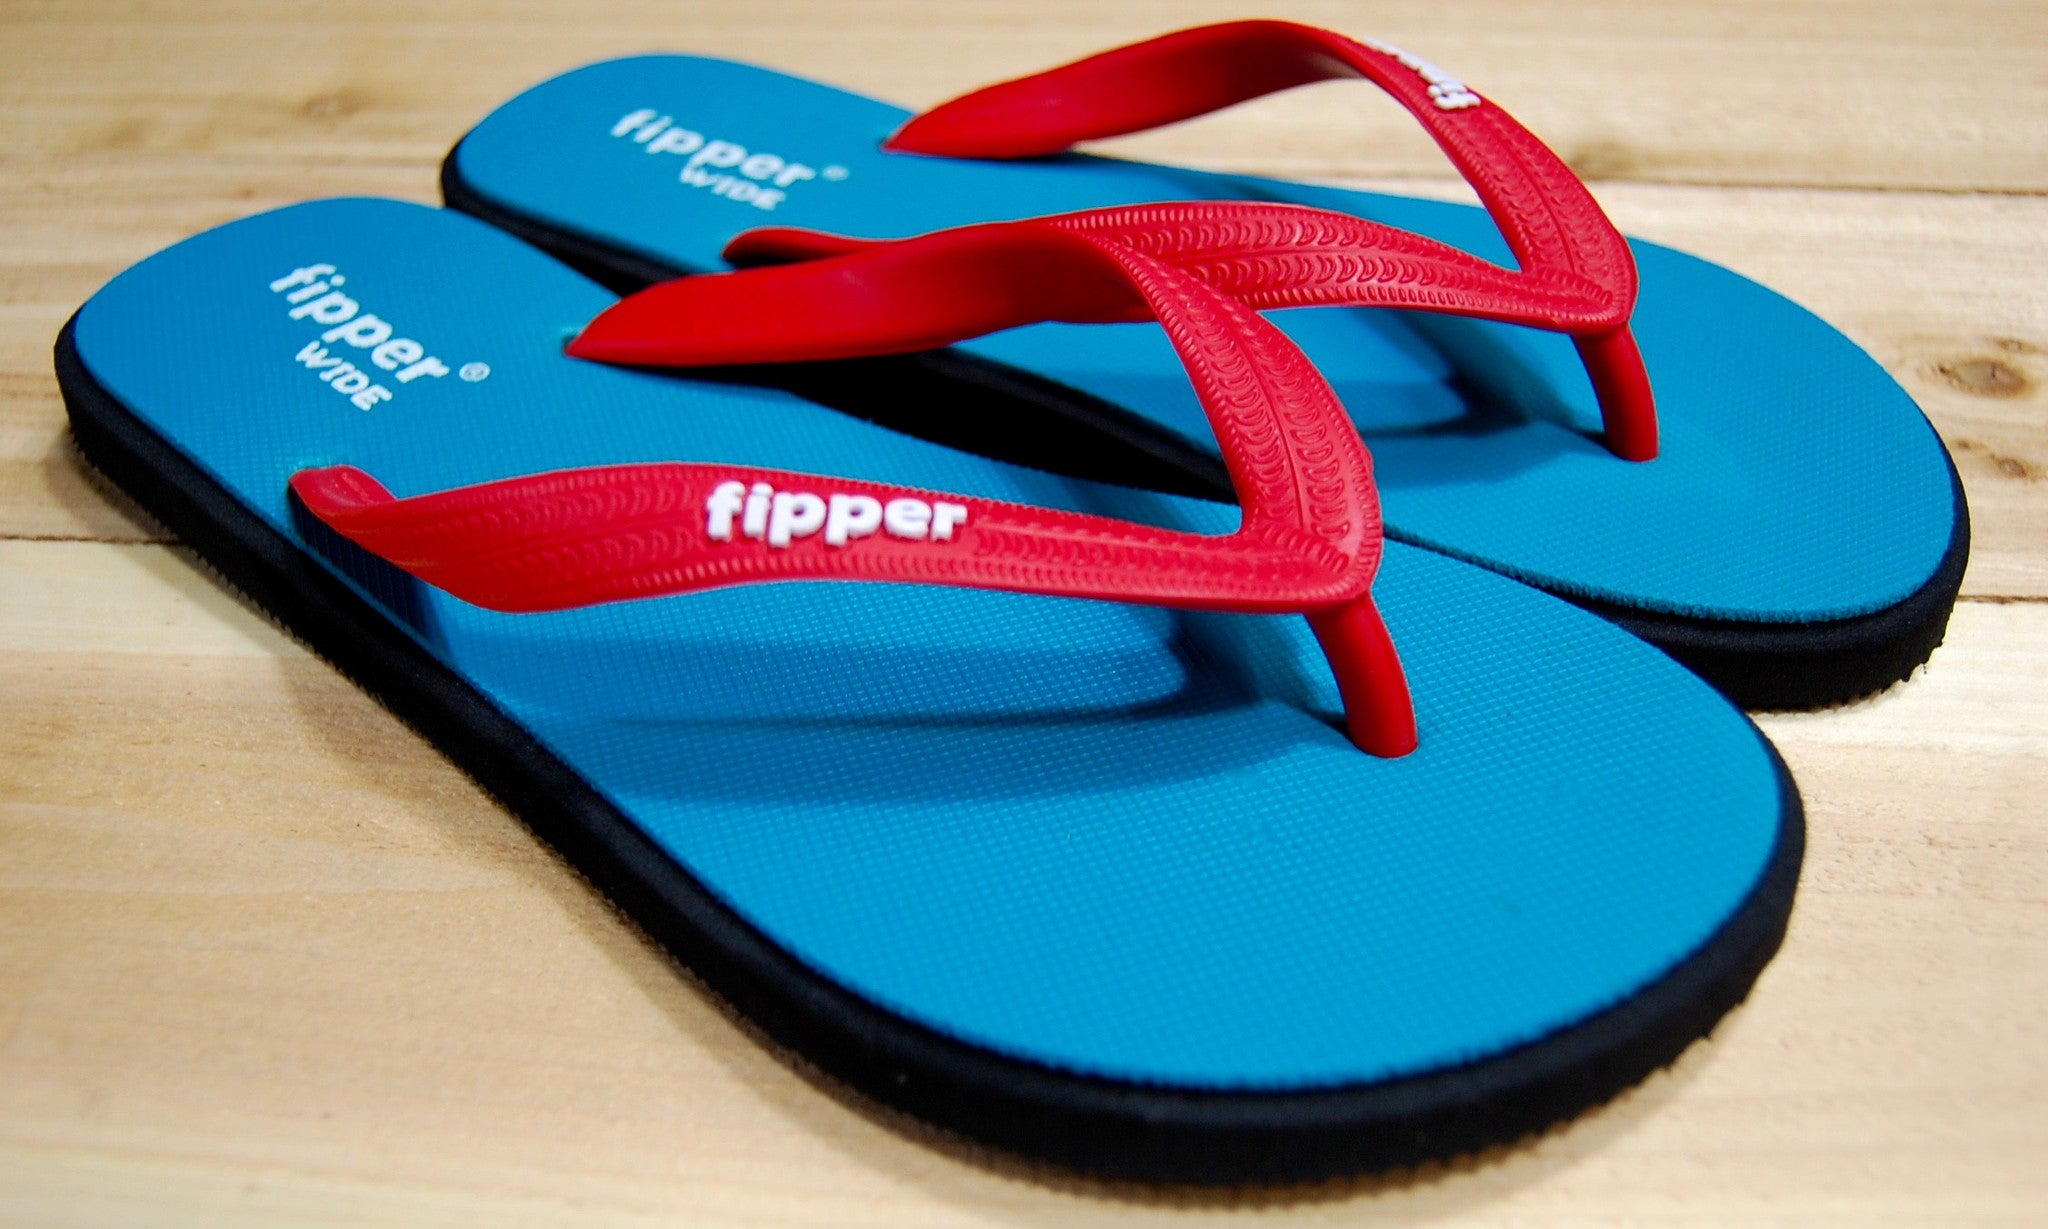 ce24862bc Fipper Wide | Natural Rubber Comfortable Flip Flops for Men | FipperUSA –  Fipper USA